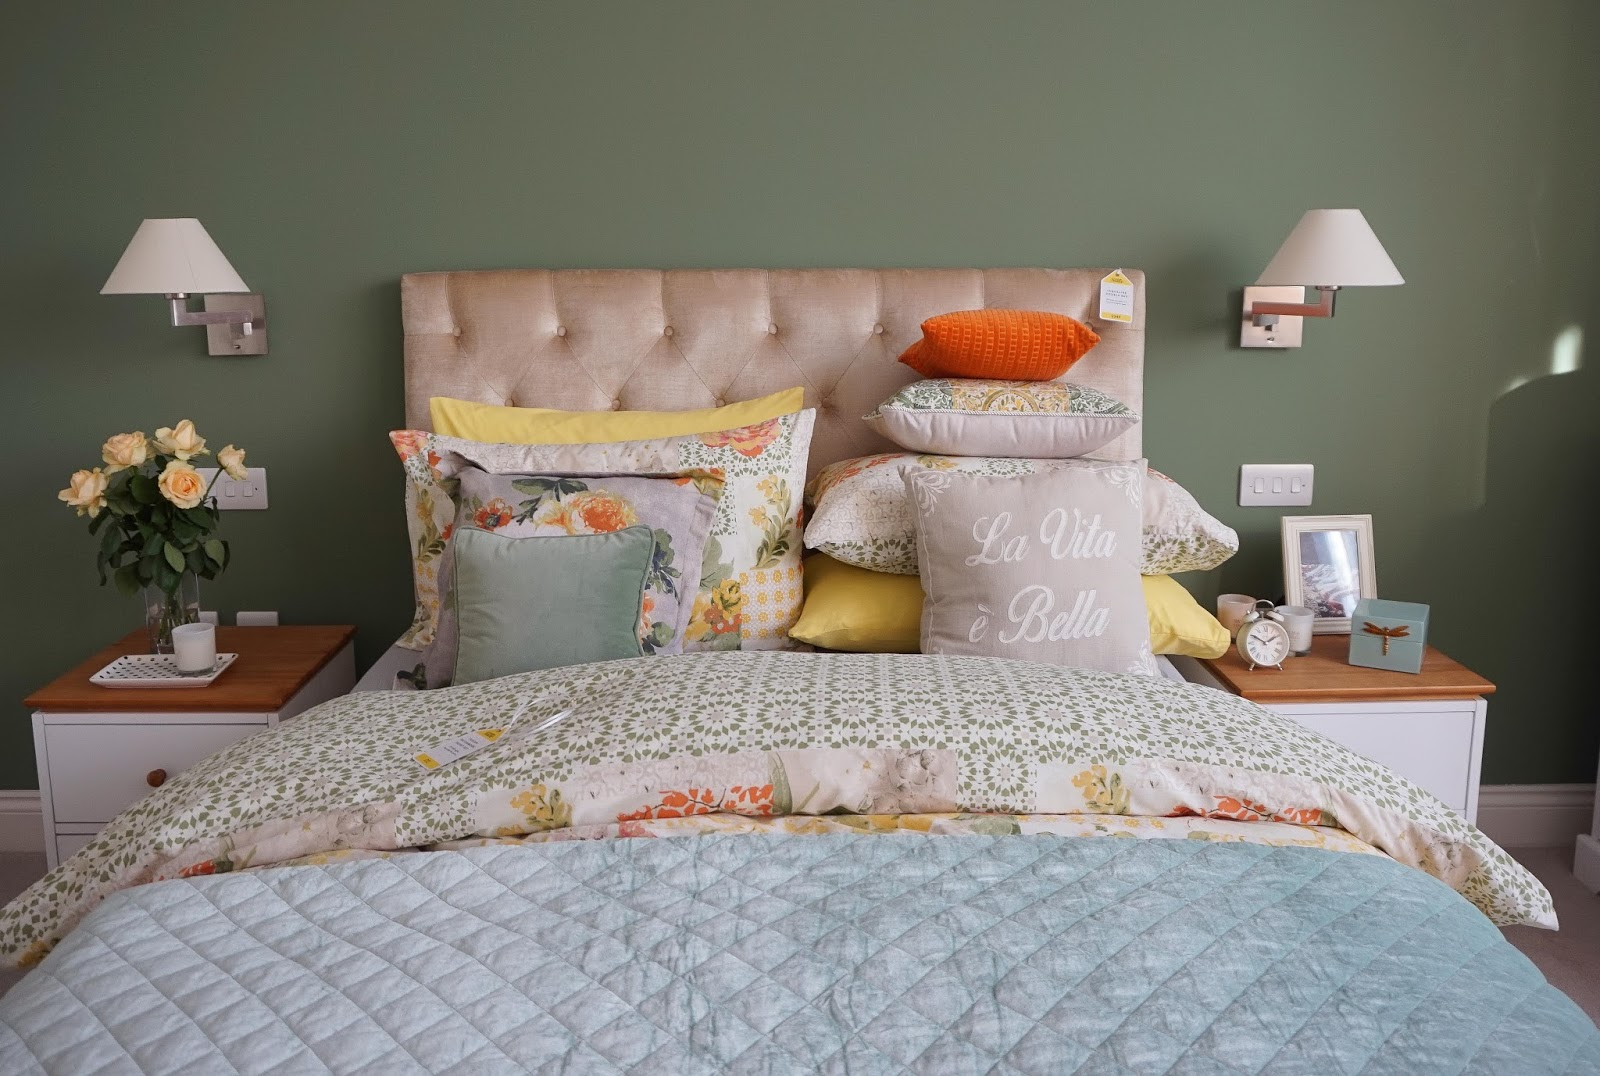 side street style redecorating your bedroom on a budget